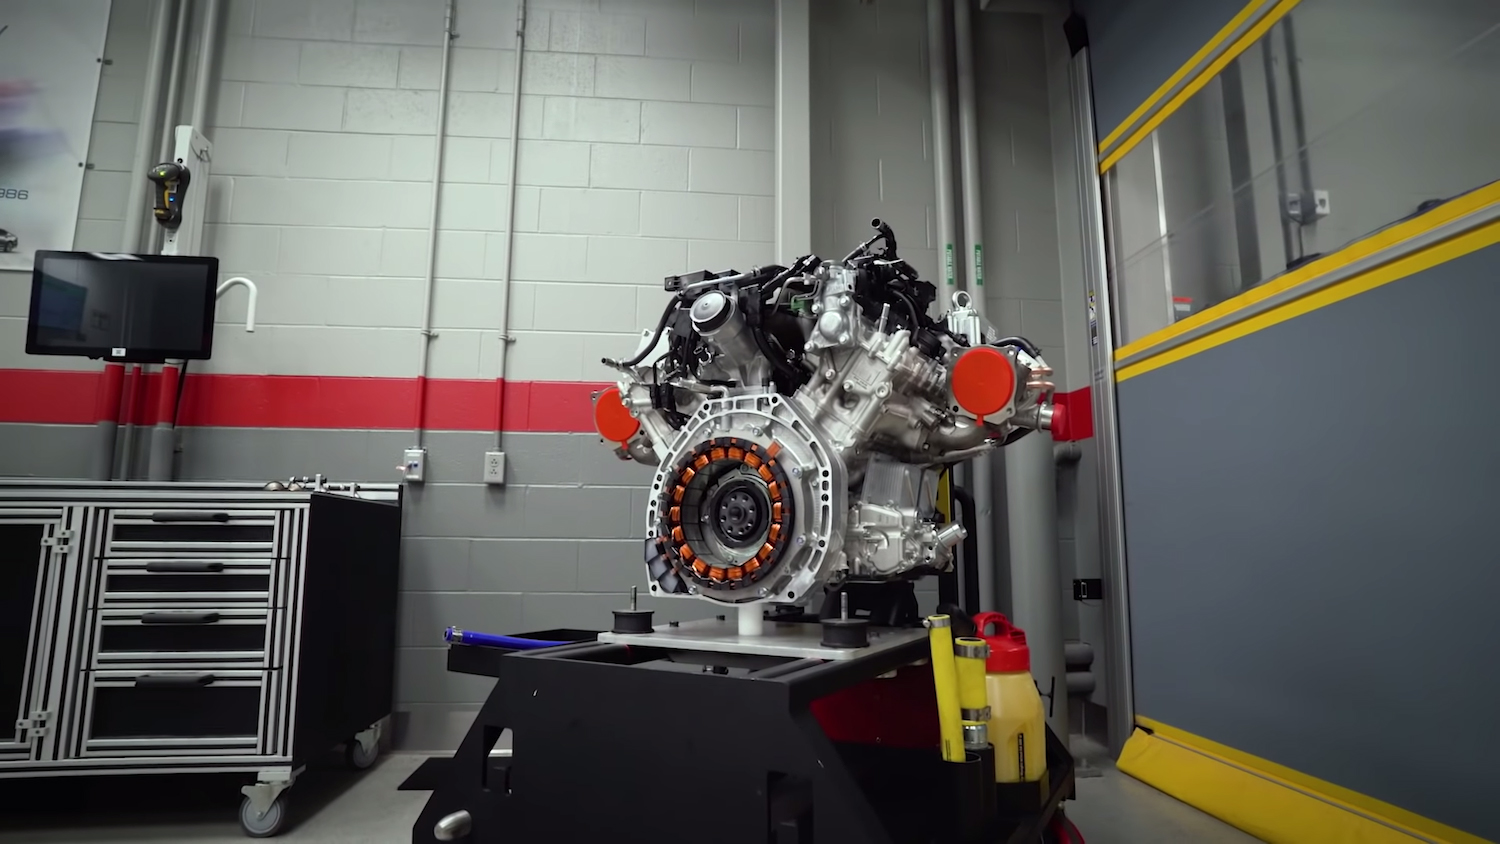 nsx engine on stand